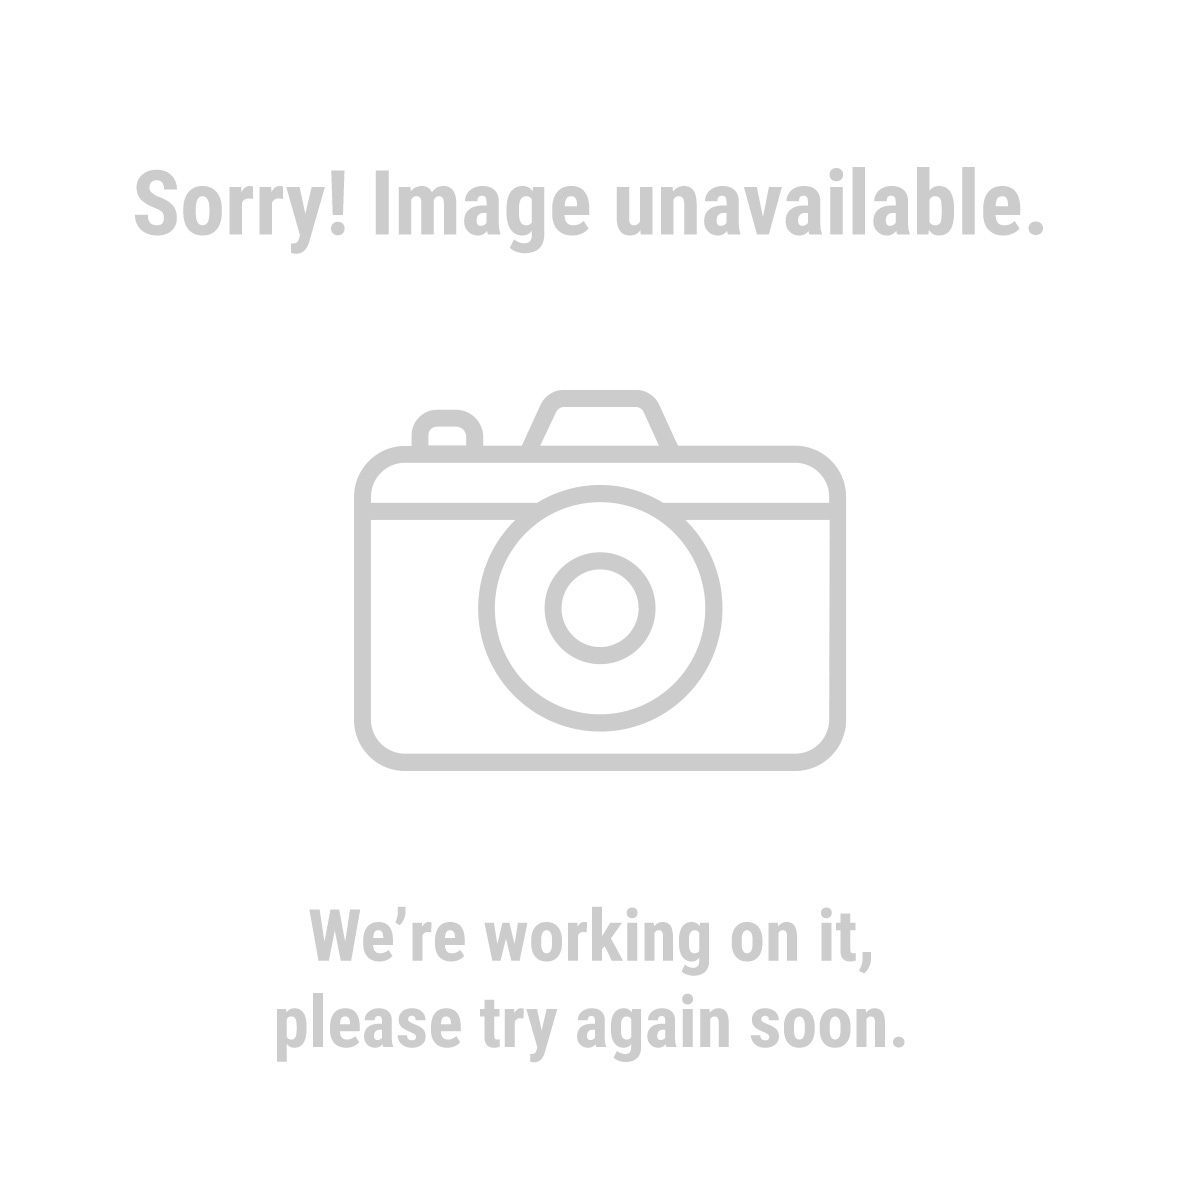 Haul-Master® 62703 36 In. x 24 In. Polypropylene Industrial Service Cart